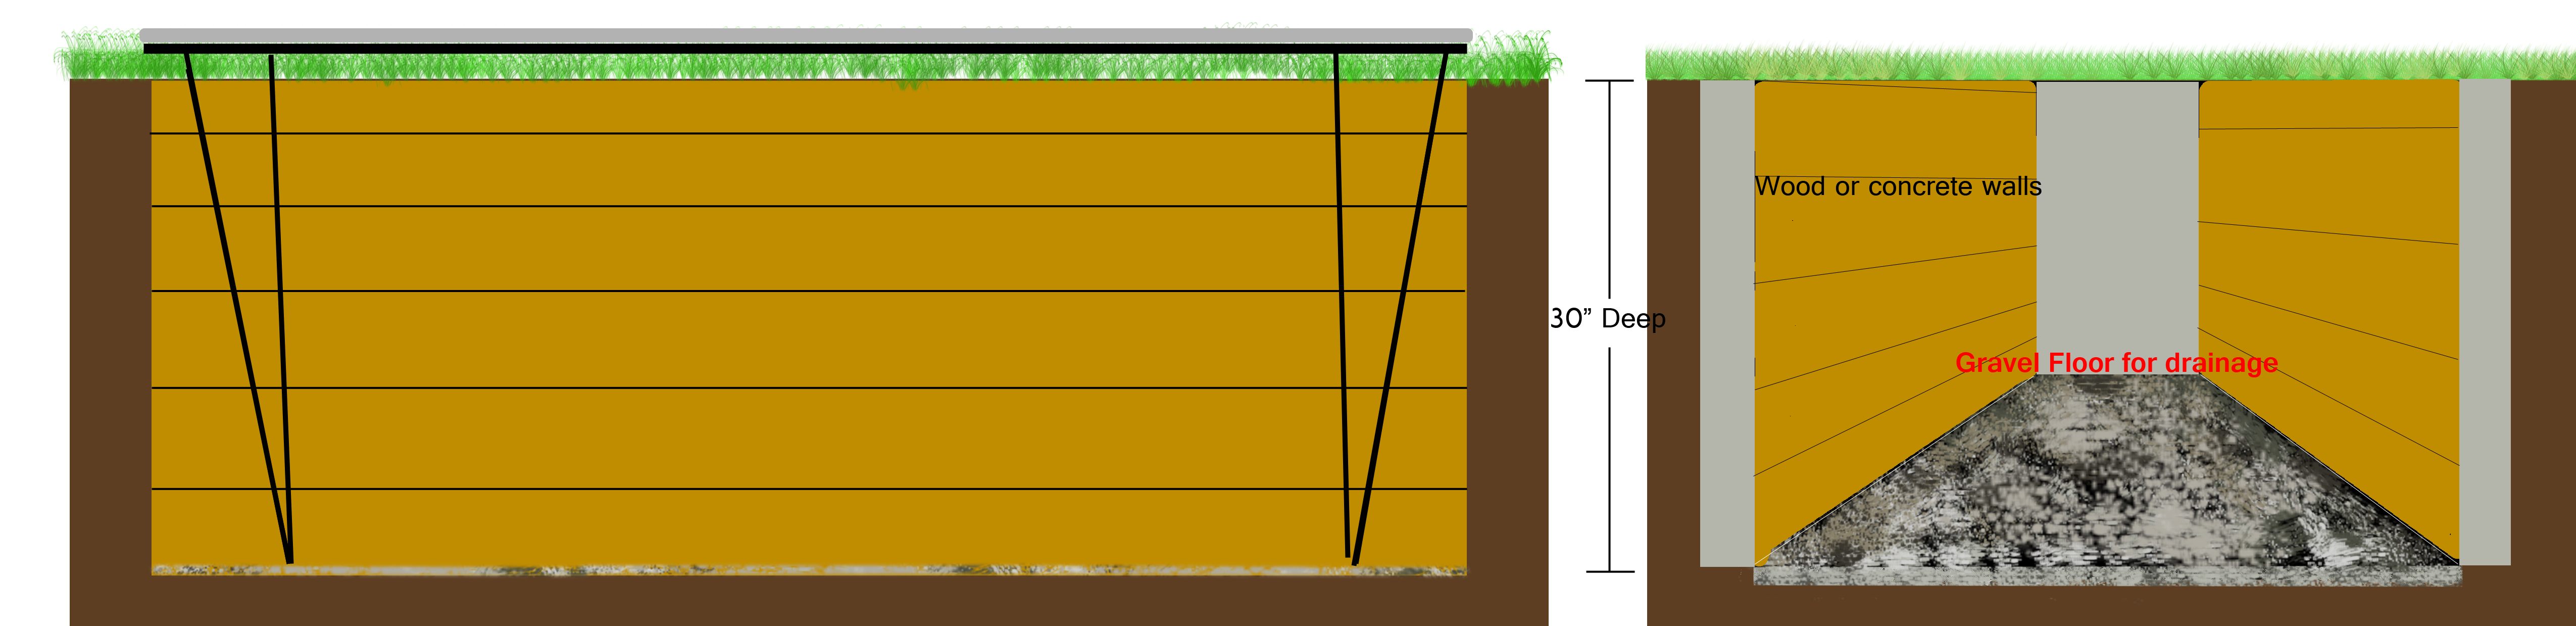 backyard-pit-diagram.png